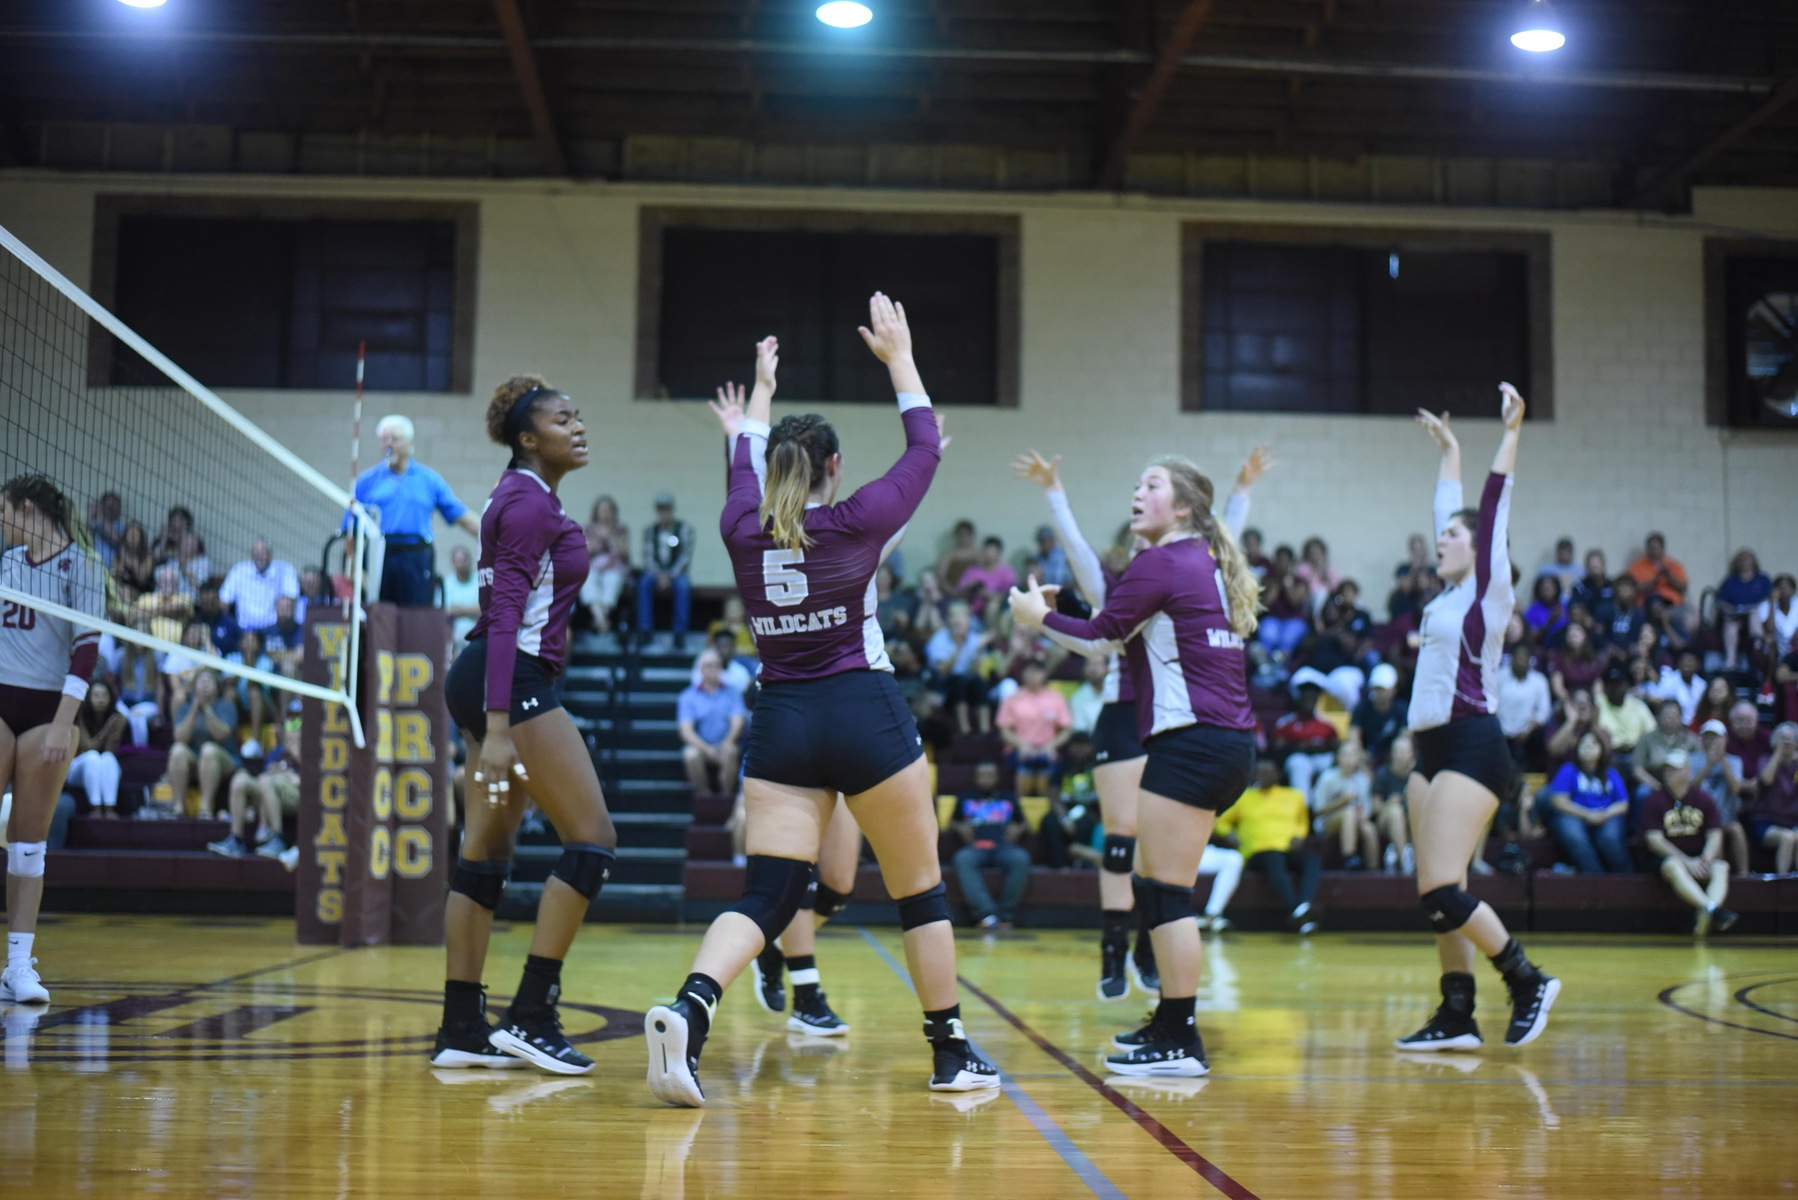 Pearl River's volleyball team defeated visiting Coastal Alabama-East 3-0 (28-26, 25-17, 25-10) on Aug. 24, 2019 at Shivers Gymnasium in Poplarville, Mississippi. PRCC is the first Mississippi junior college to add volleyball as a sport. (KRISTI HARRIS/PRCC ATHLETICS)